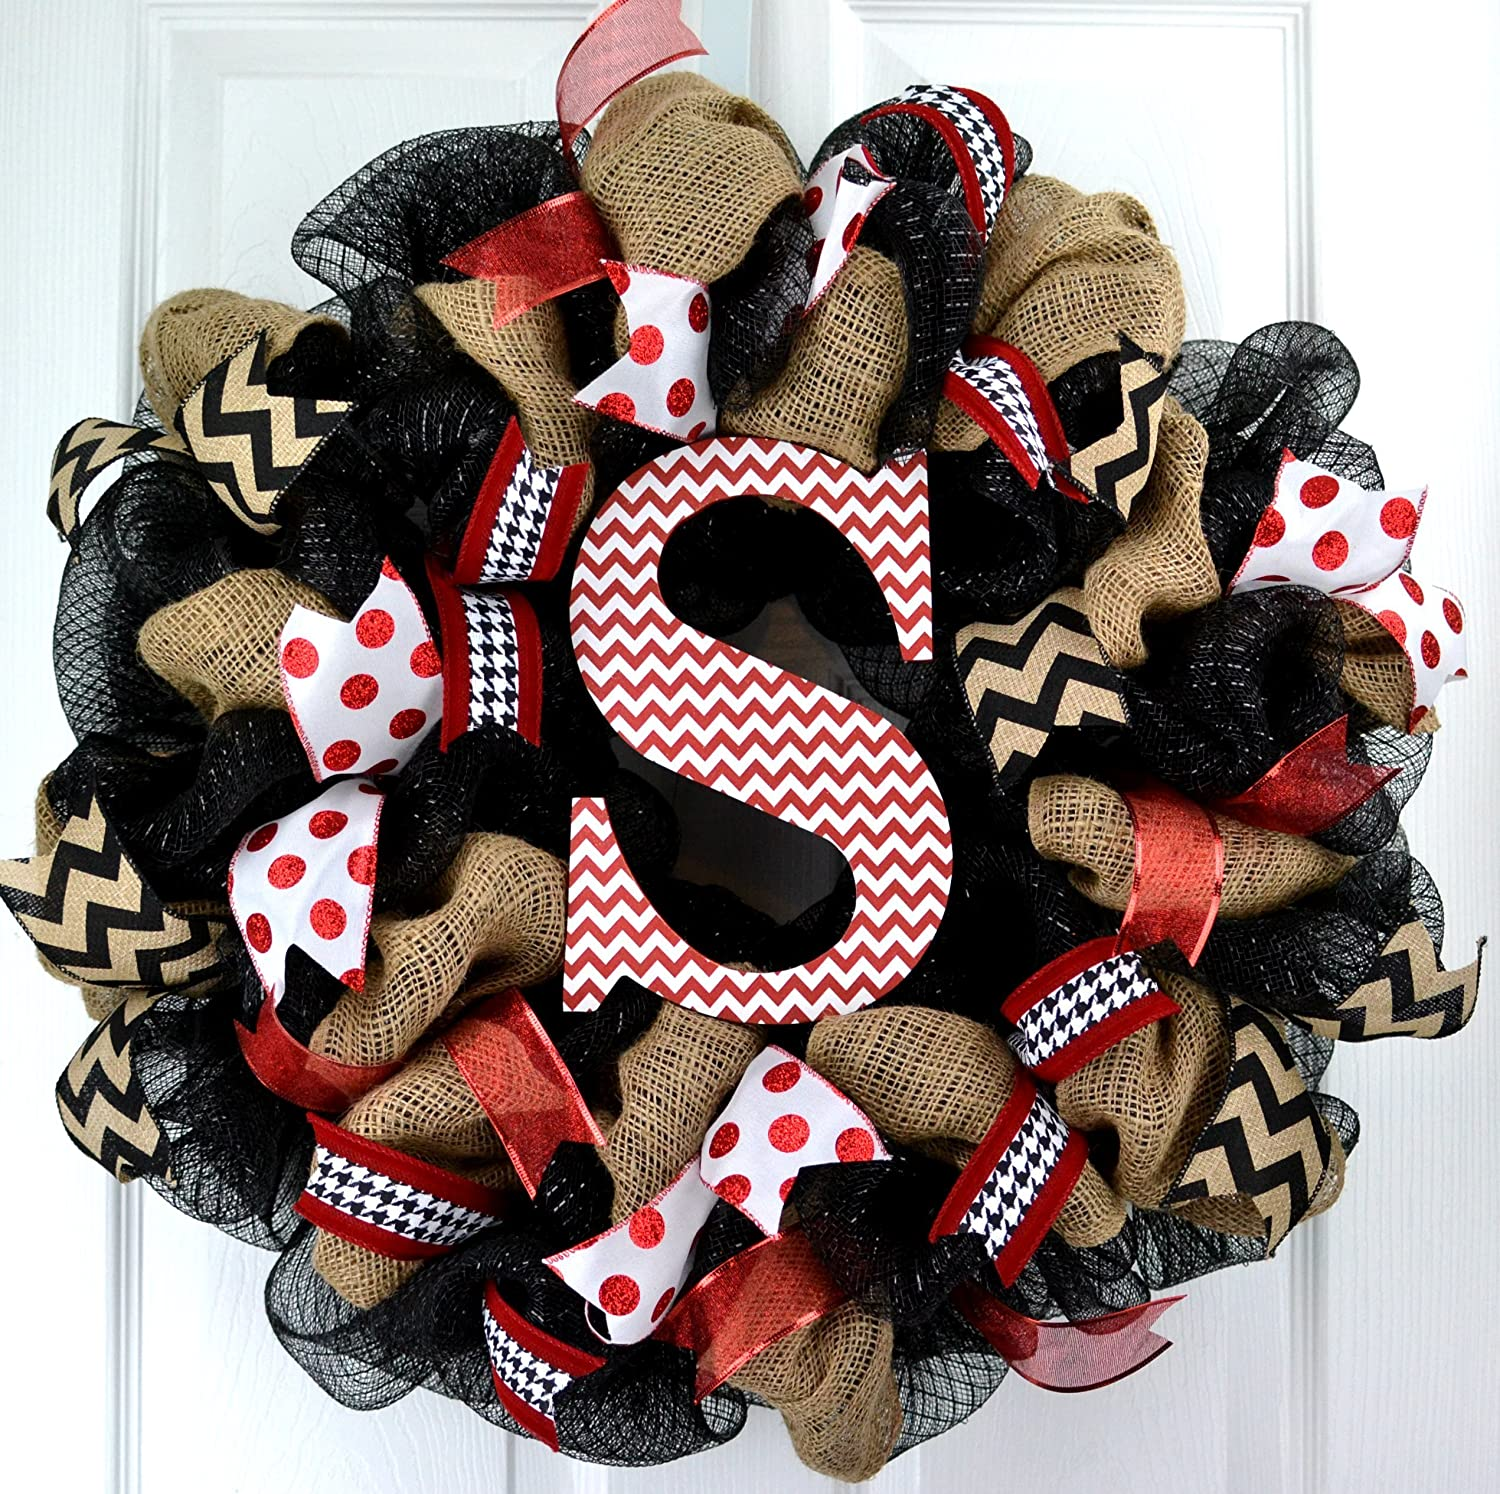 Burlap Monogram Letter Initial Mesh Outdoor Front Door Wreath; Black Red White Chevron